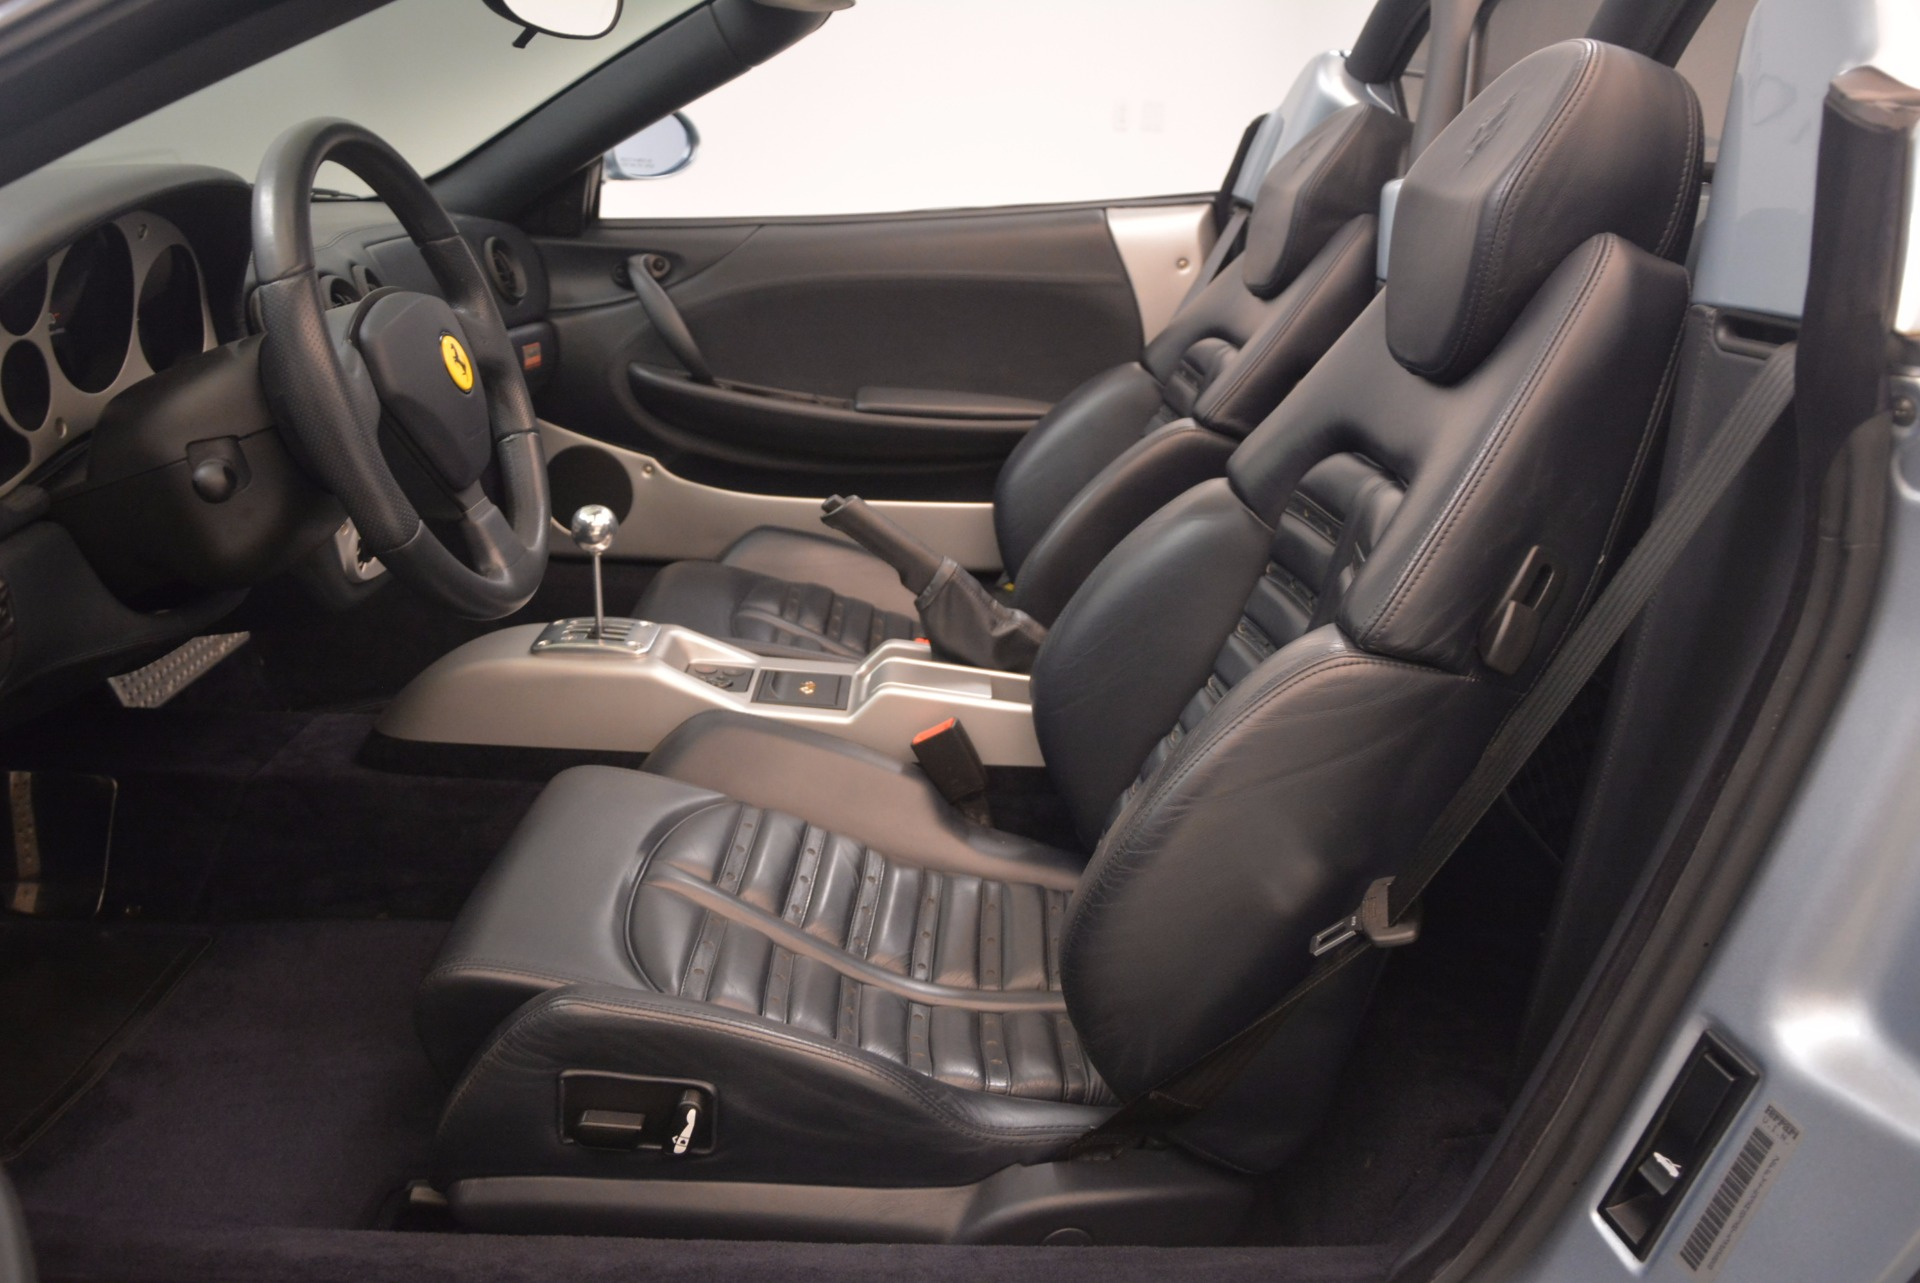 Used 2003 Ferrari 360 Spider 6-Speed Manual For Sale In Greenwich, CT 1445_p26